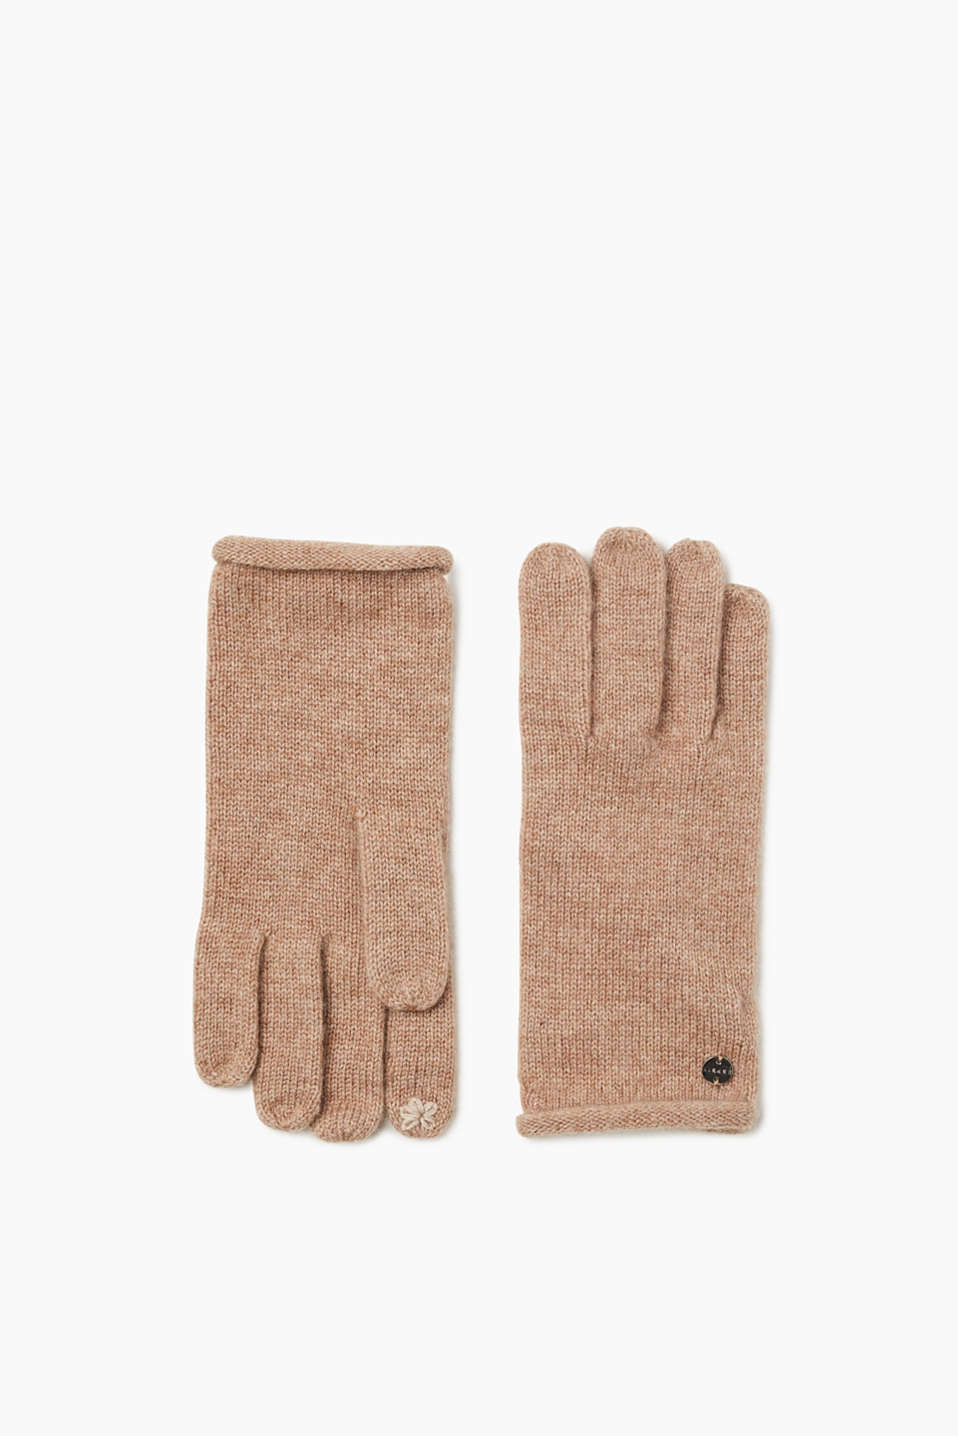 These elegant knitted gloves can be used with touchscreens and are composed of an impressive wool/cashmere blend.